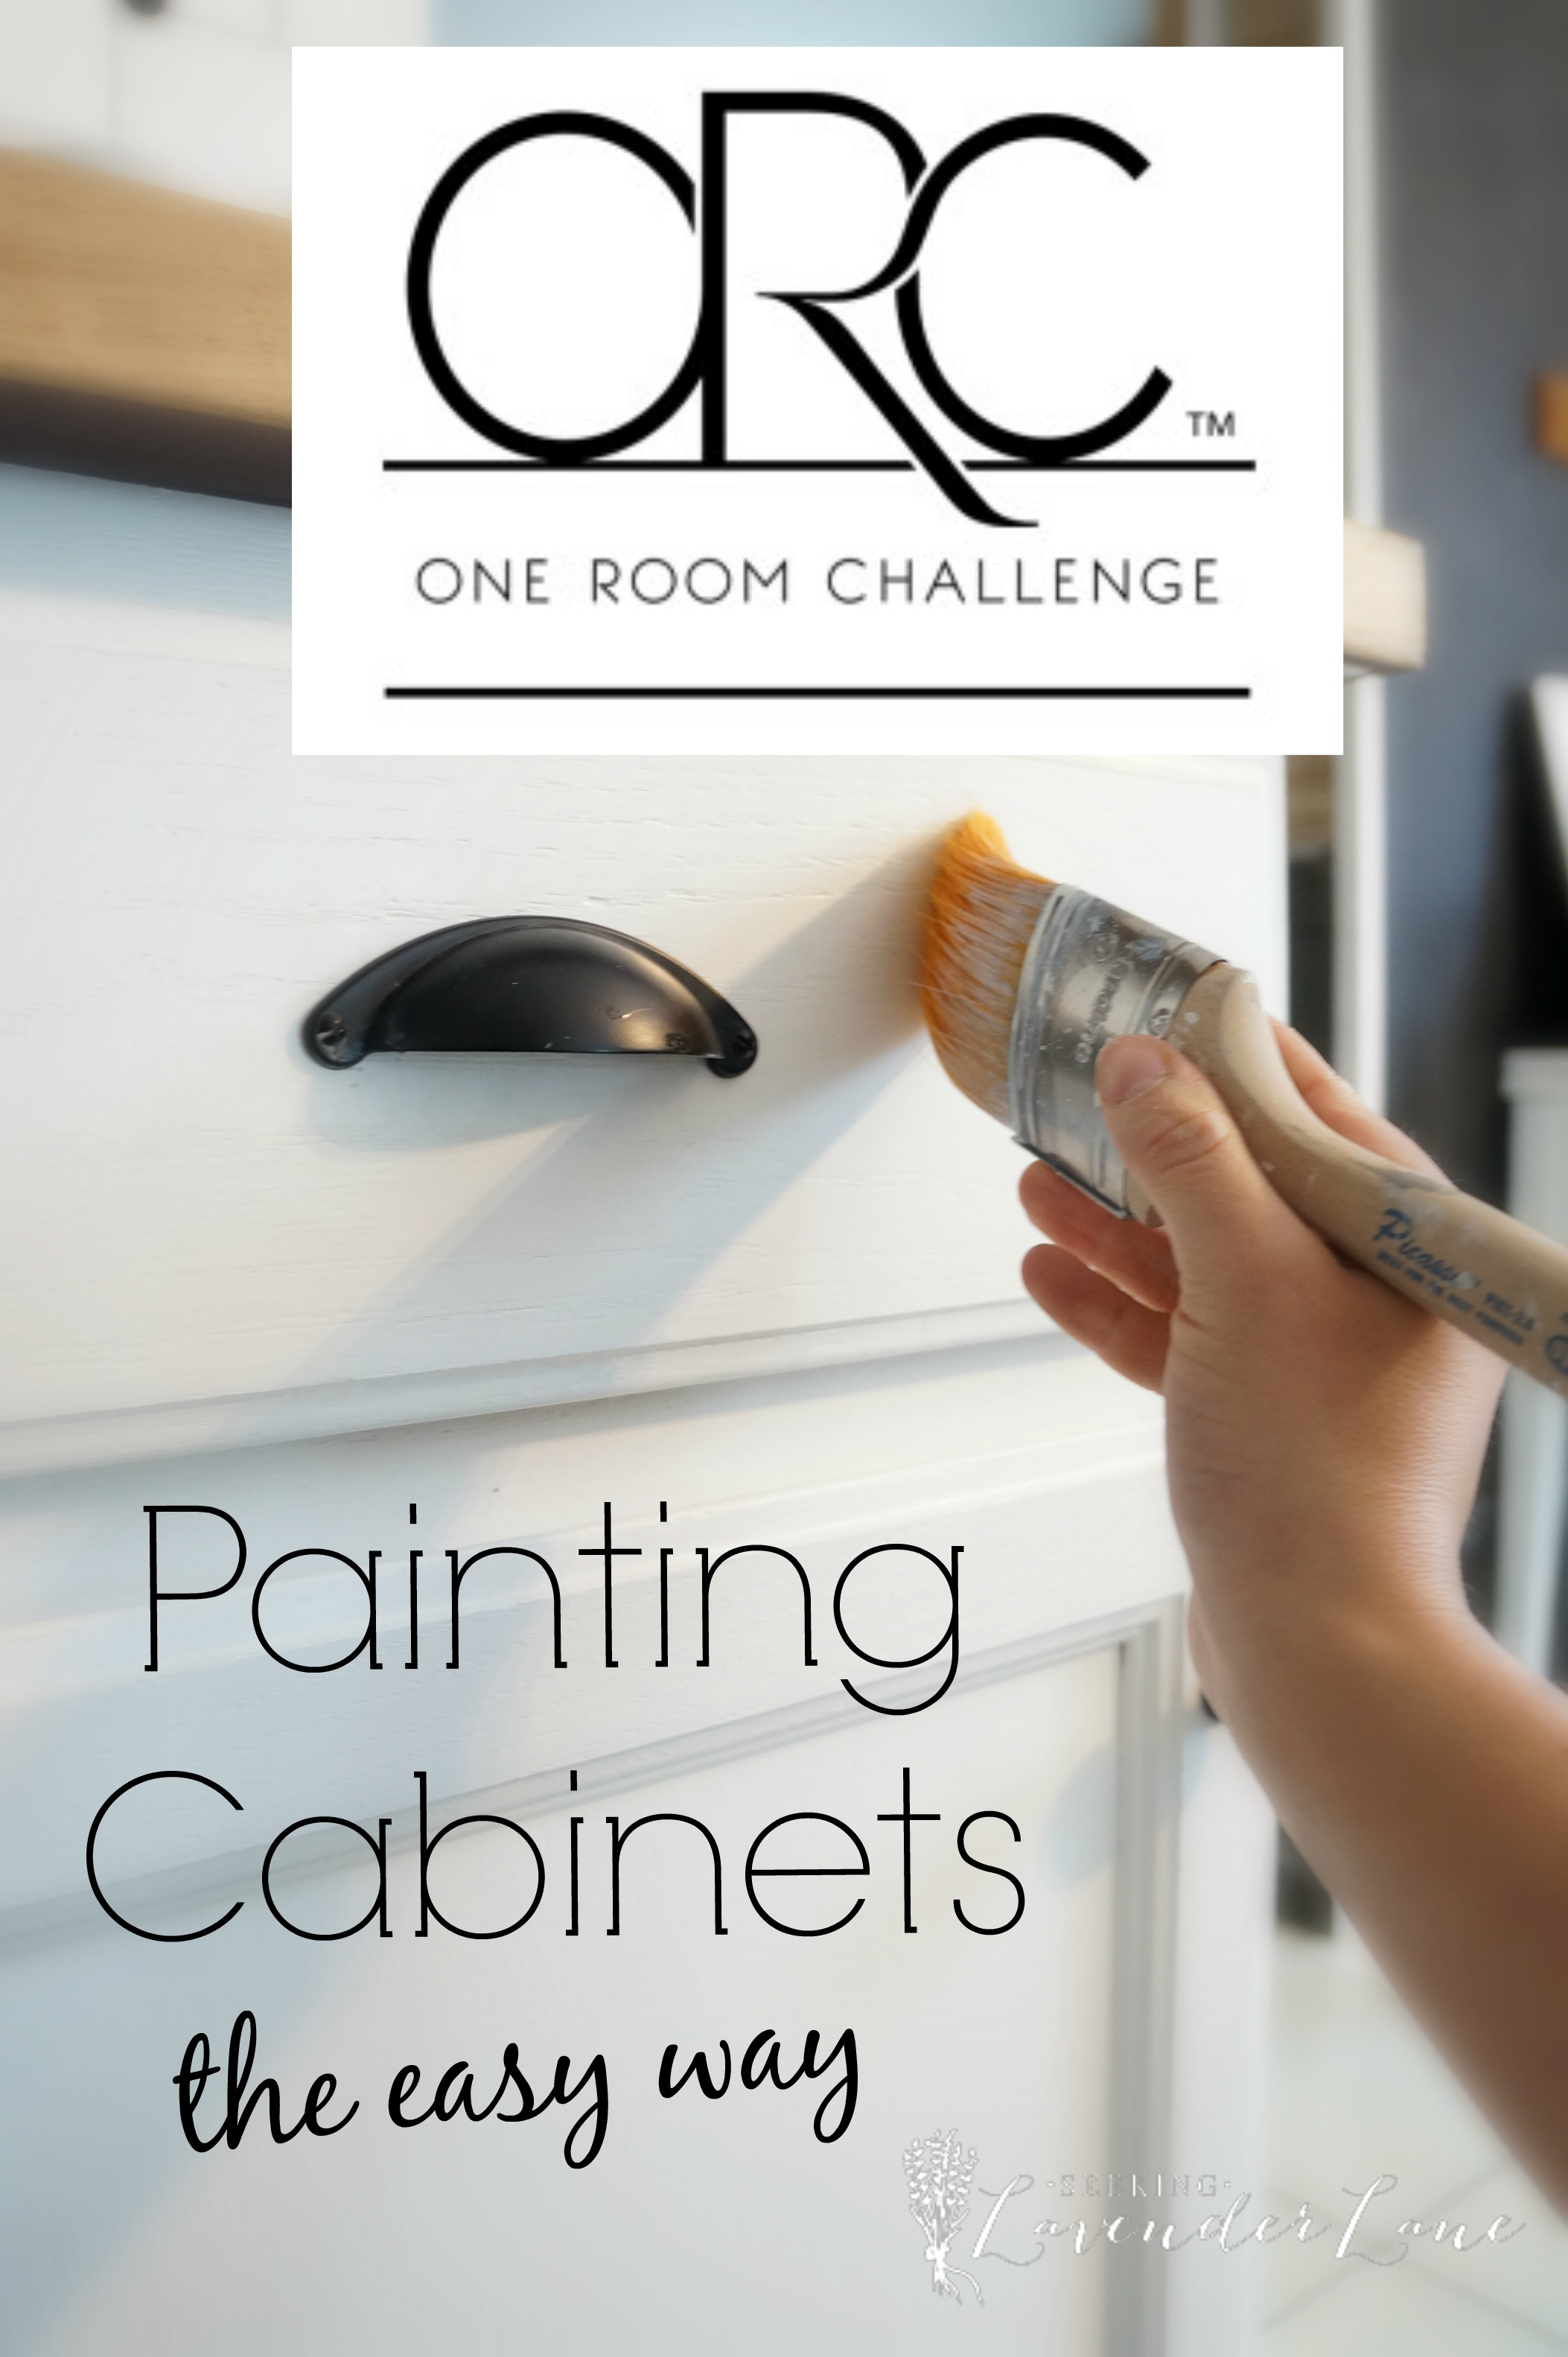 Best Kitchen Gallery: Painting Kitchen Cabi S The Easy Way Seeking Lavendar Lane of Easy Way To Paint Kitchen Cabinets on rachelxblog.com